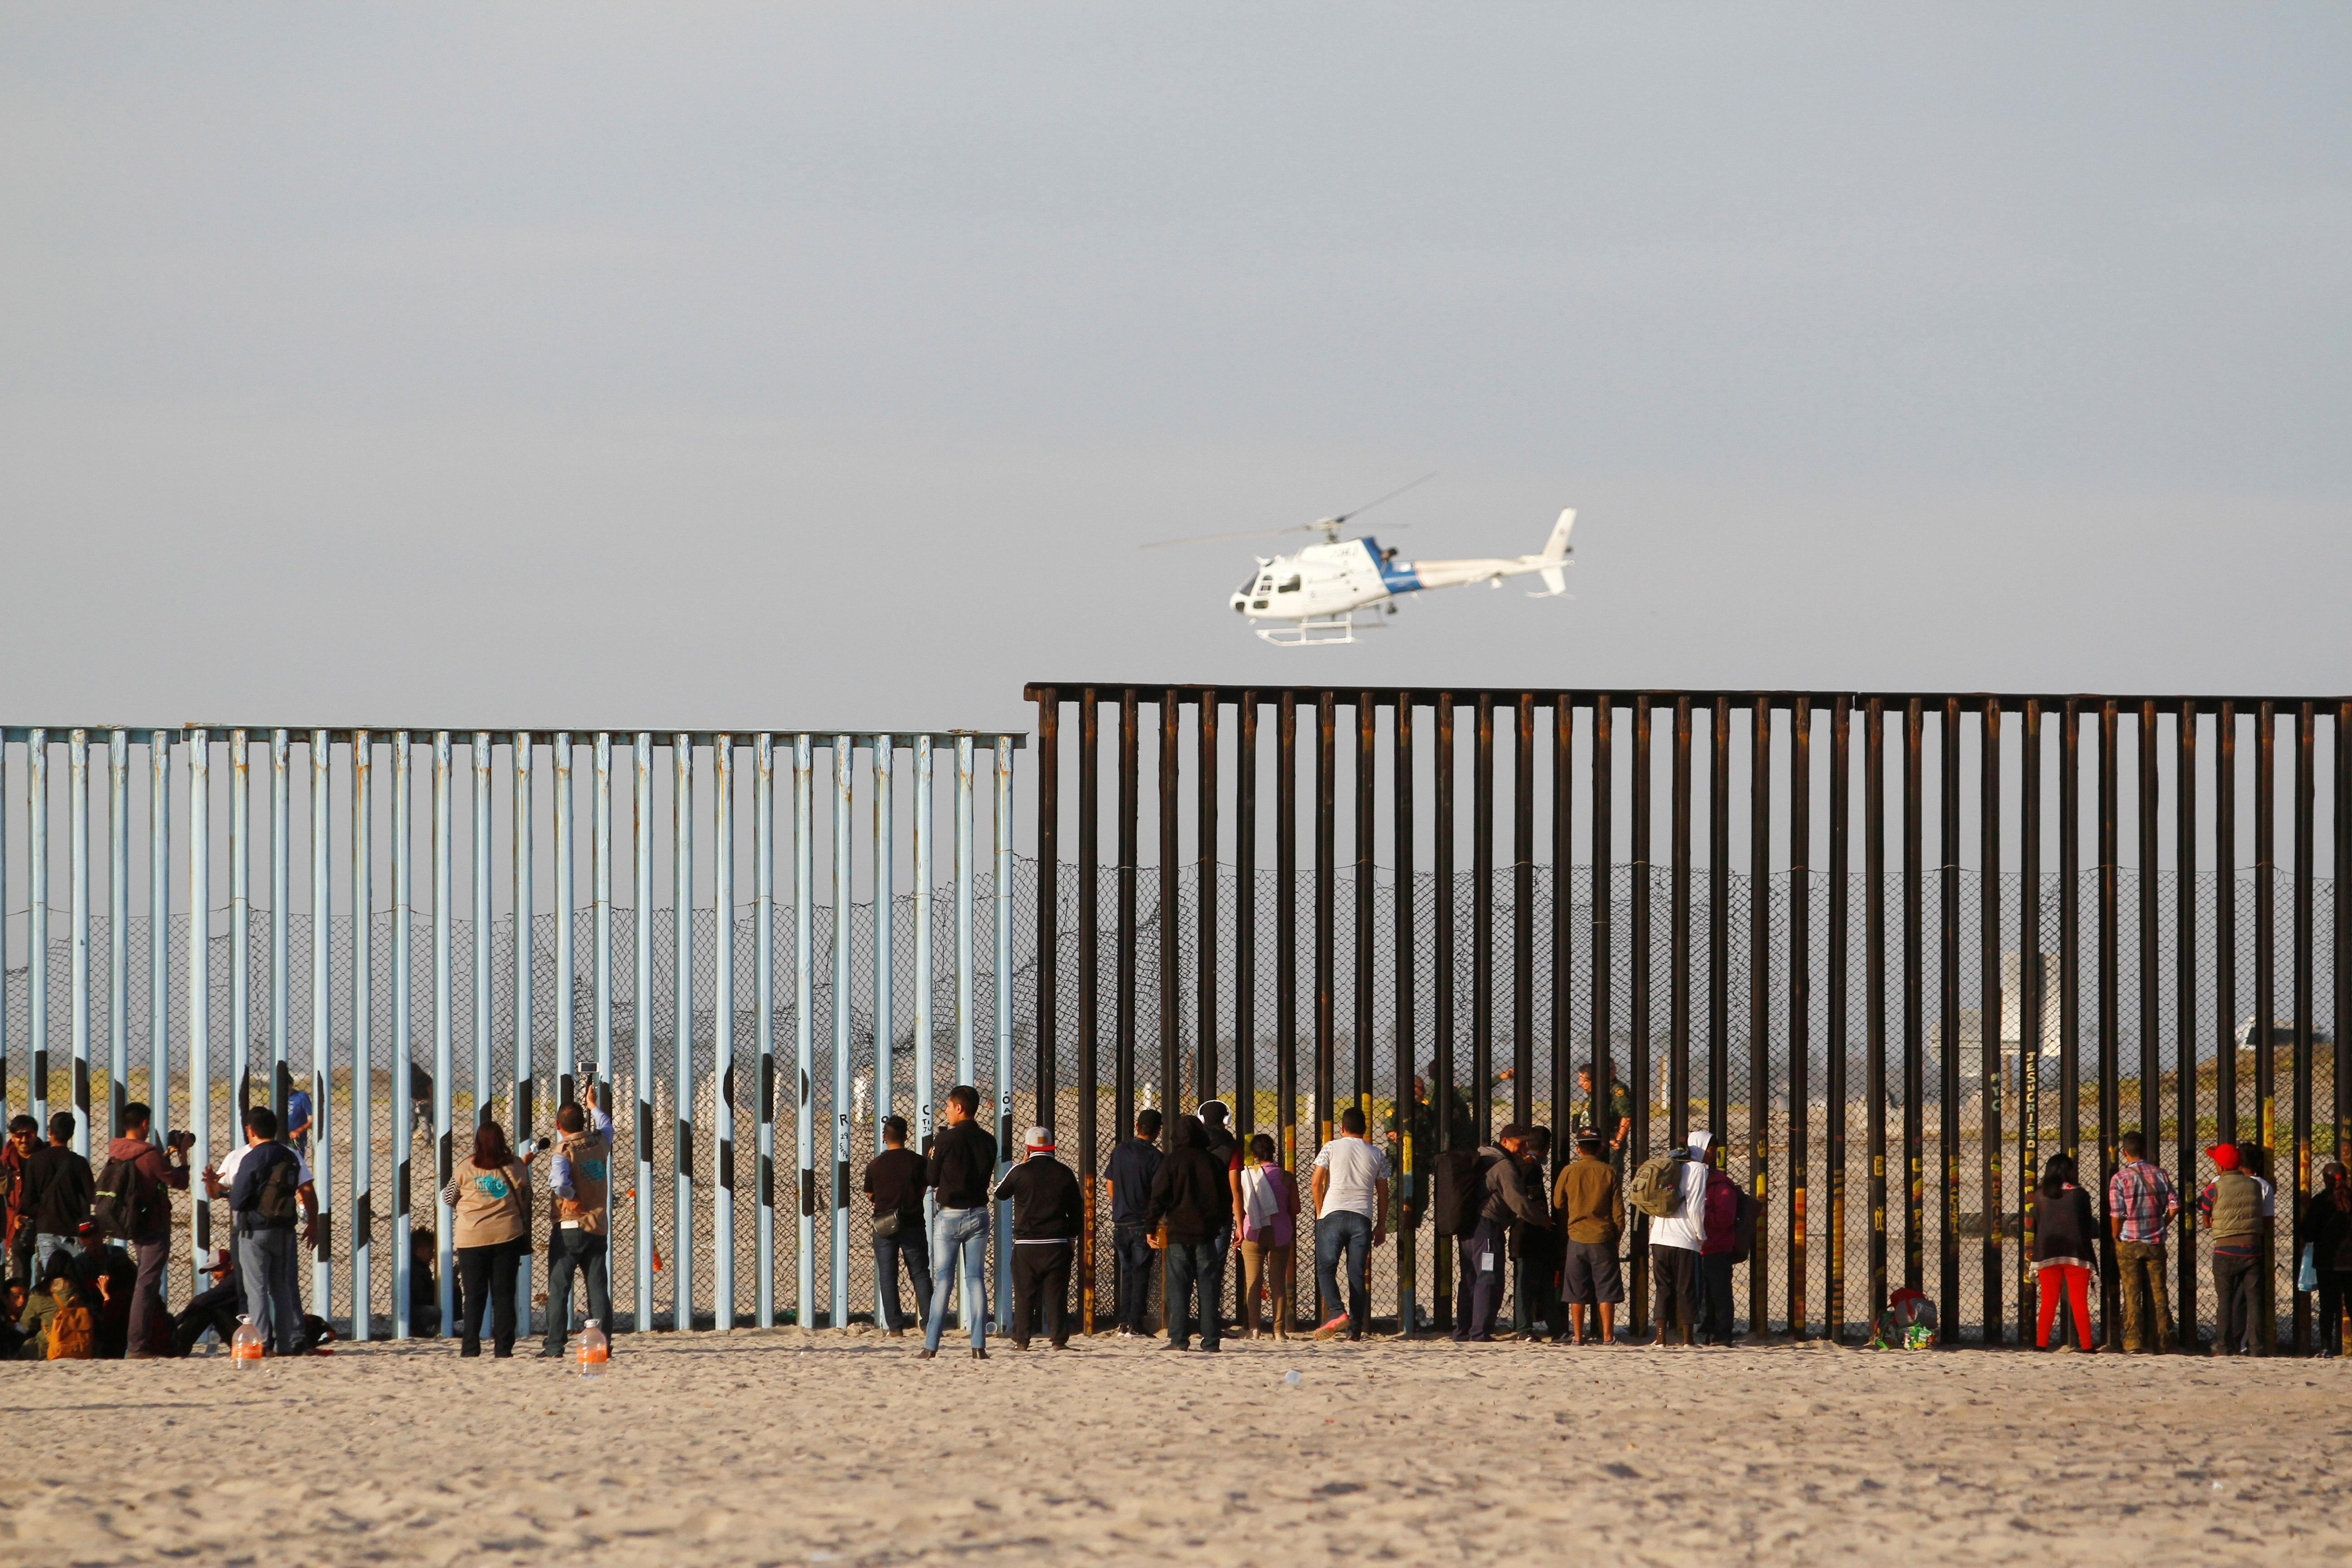 <p>Migrants, part of a caravan of thousands trying to reach the U.S., look through the border fence between Mexico and the United States after arriving in Tijuana, Mexico, Nov. 13, 2018. (Photo: Jorge Duenes/Reuters) </p>